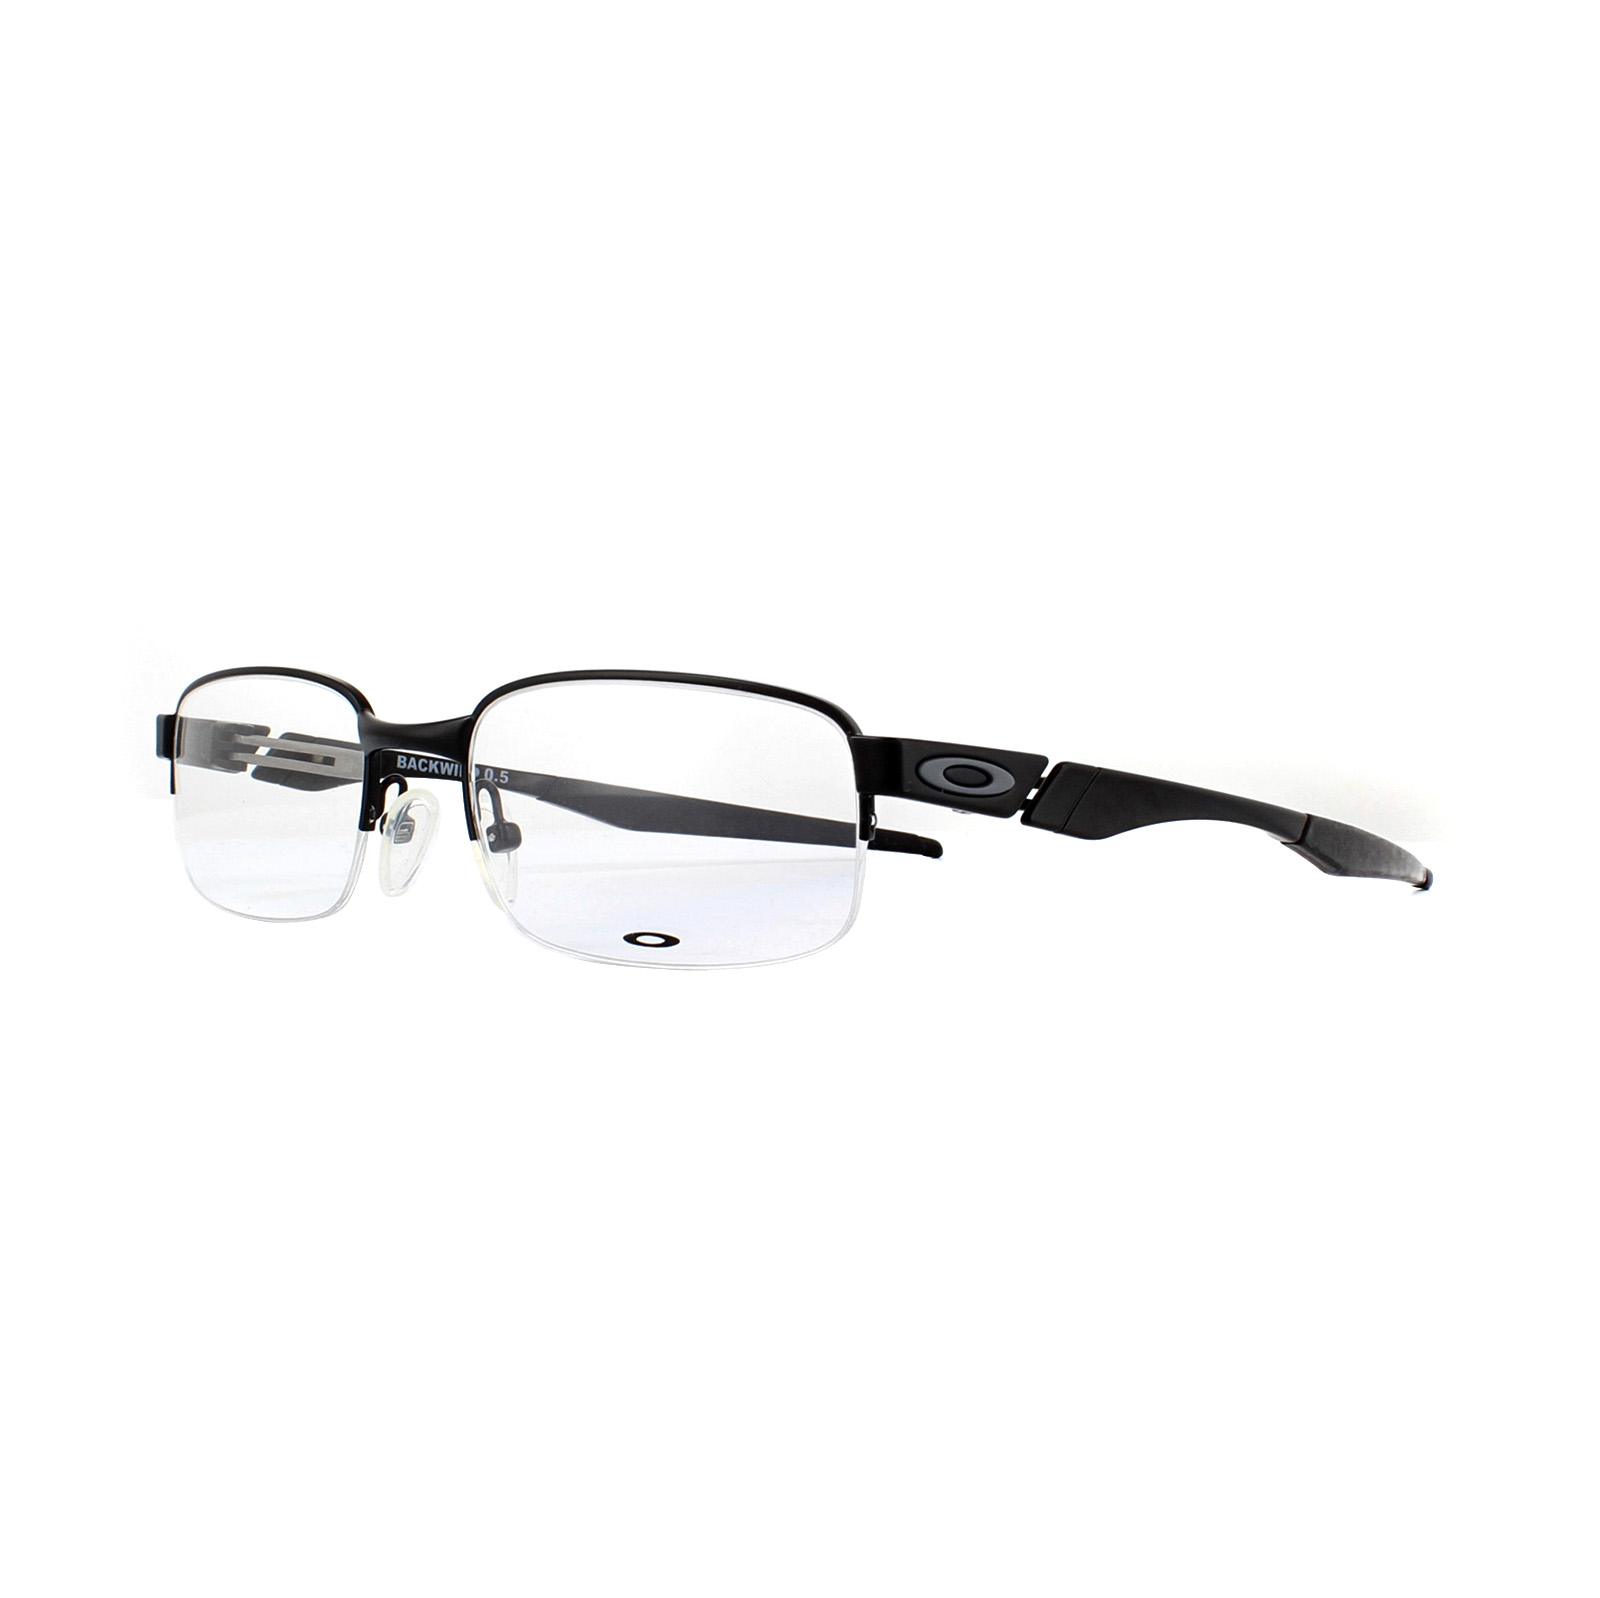 5d2a710455 Sentinel Oakley Glasses Frames Backwind 0.5 OX3163-03 Satin Black 52mm Mens